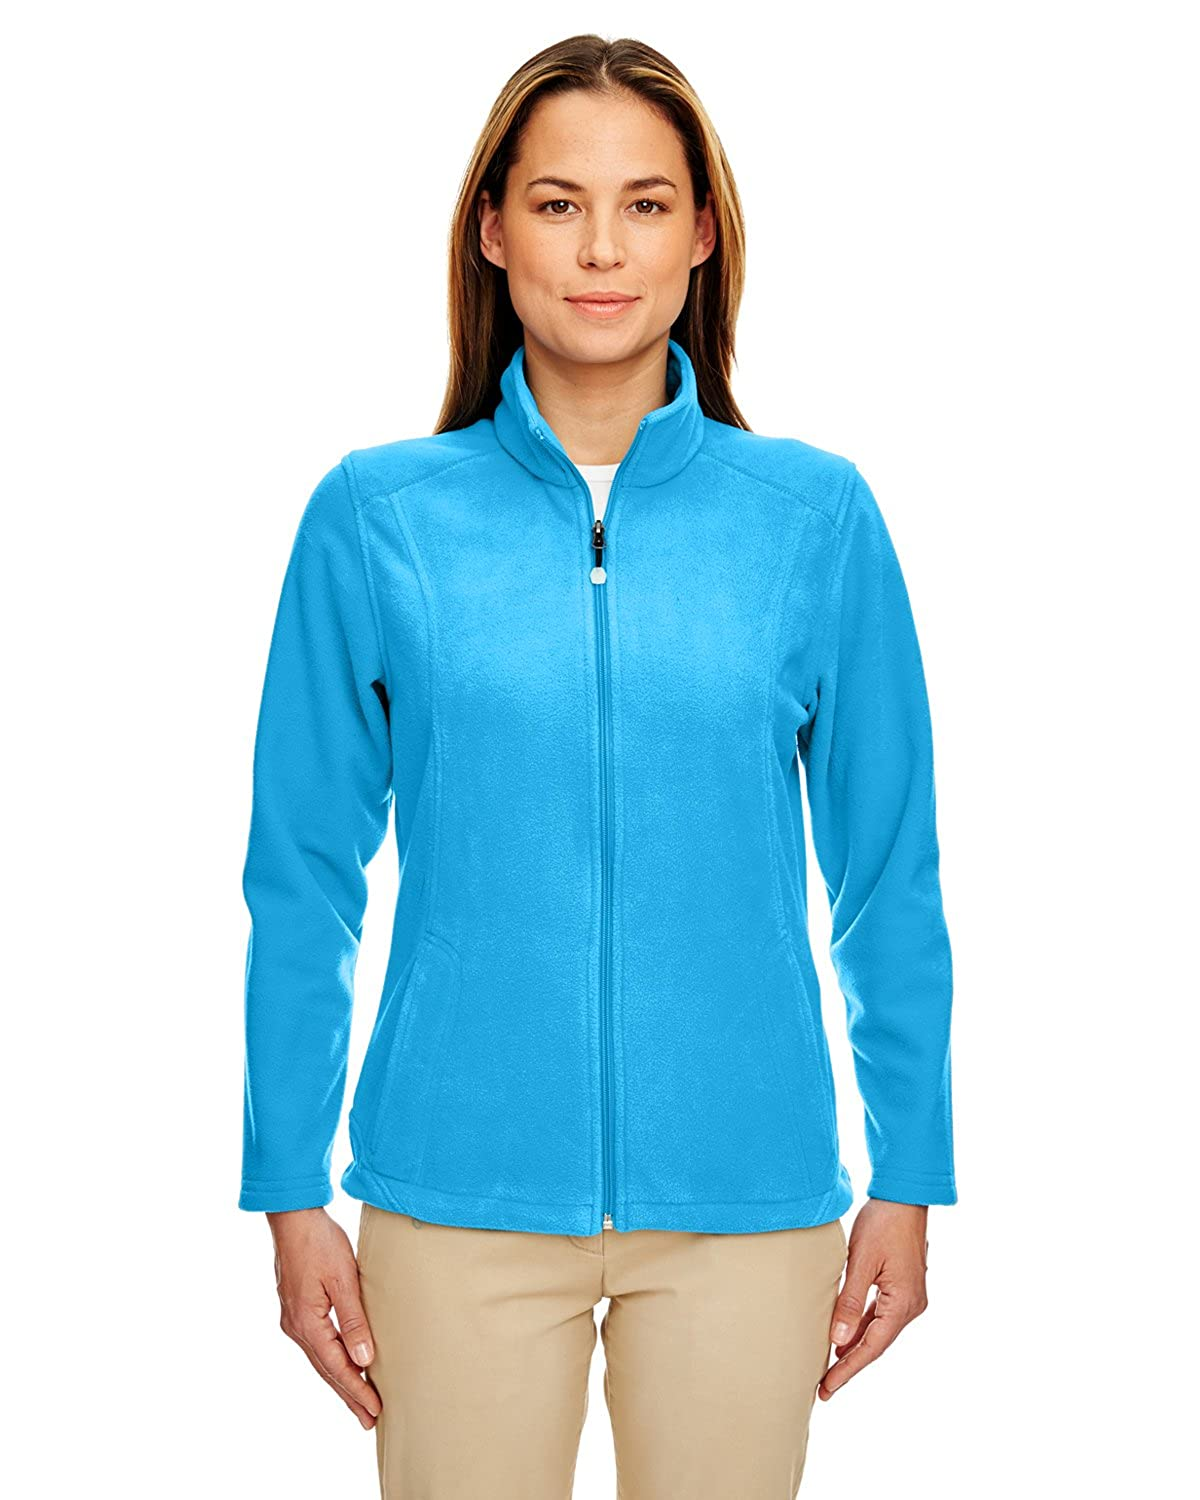 UltraClub Women's Micro Fleece Full-Zip Jacket 8498-Kinetic Blue-S